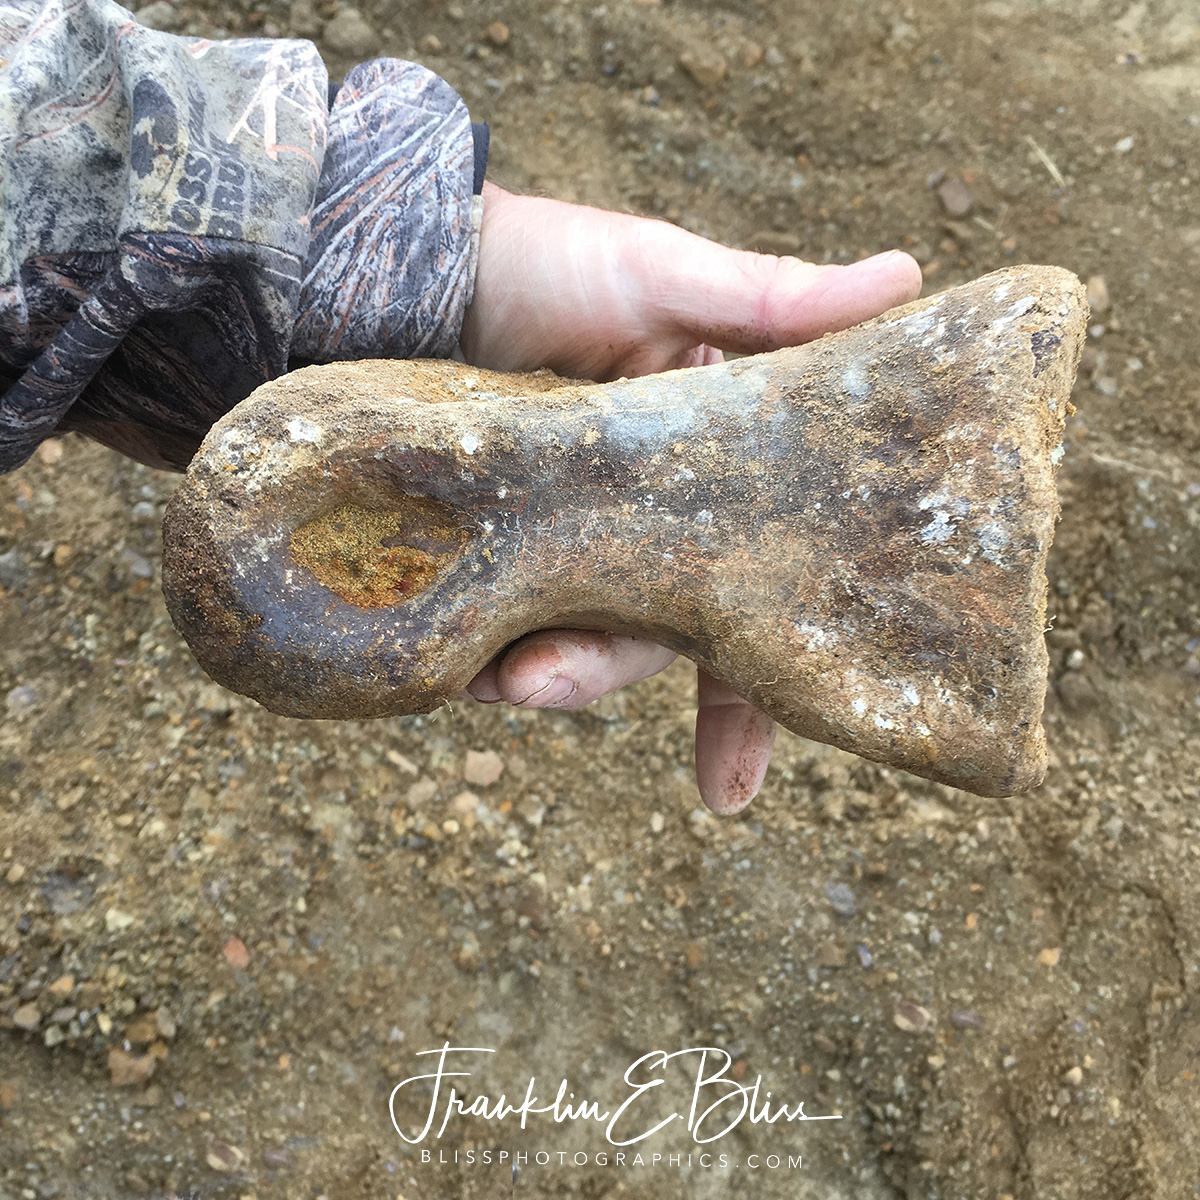 T-rex's Middle Toe Bone...just before the Killing Claw!